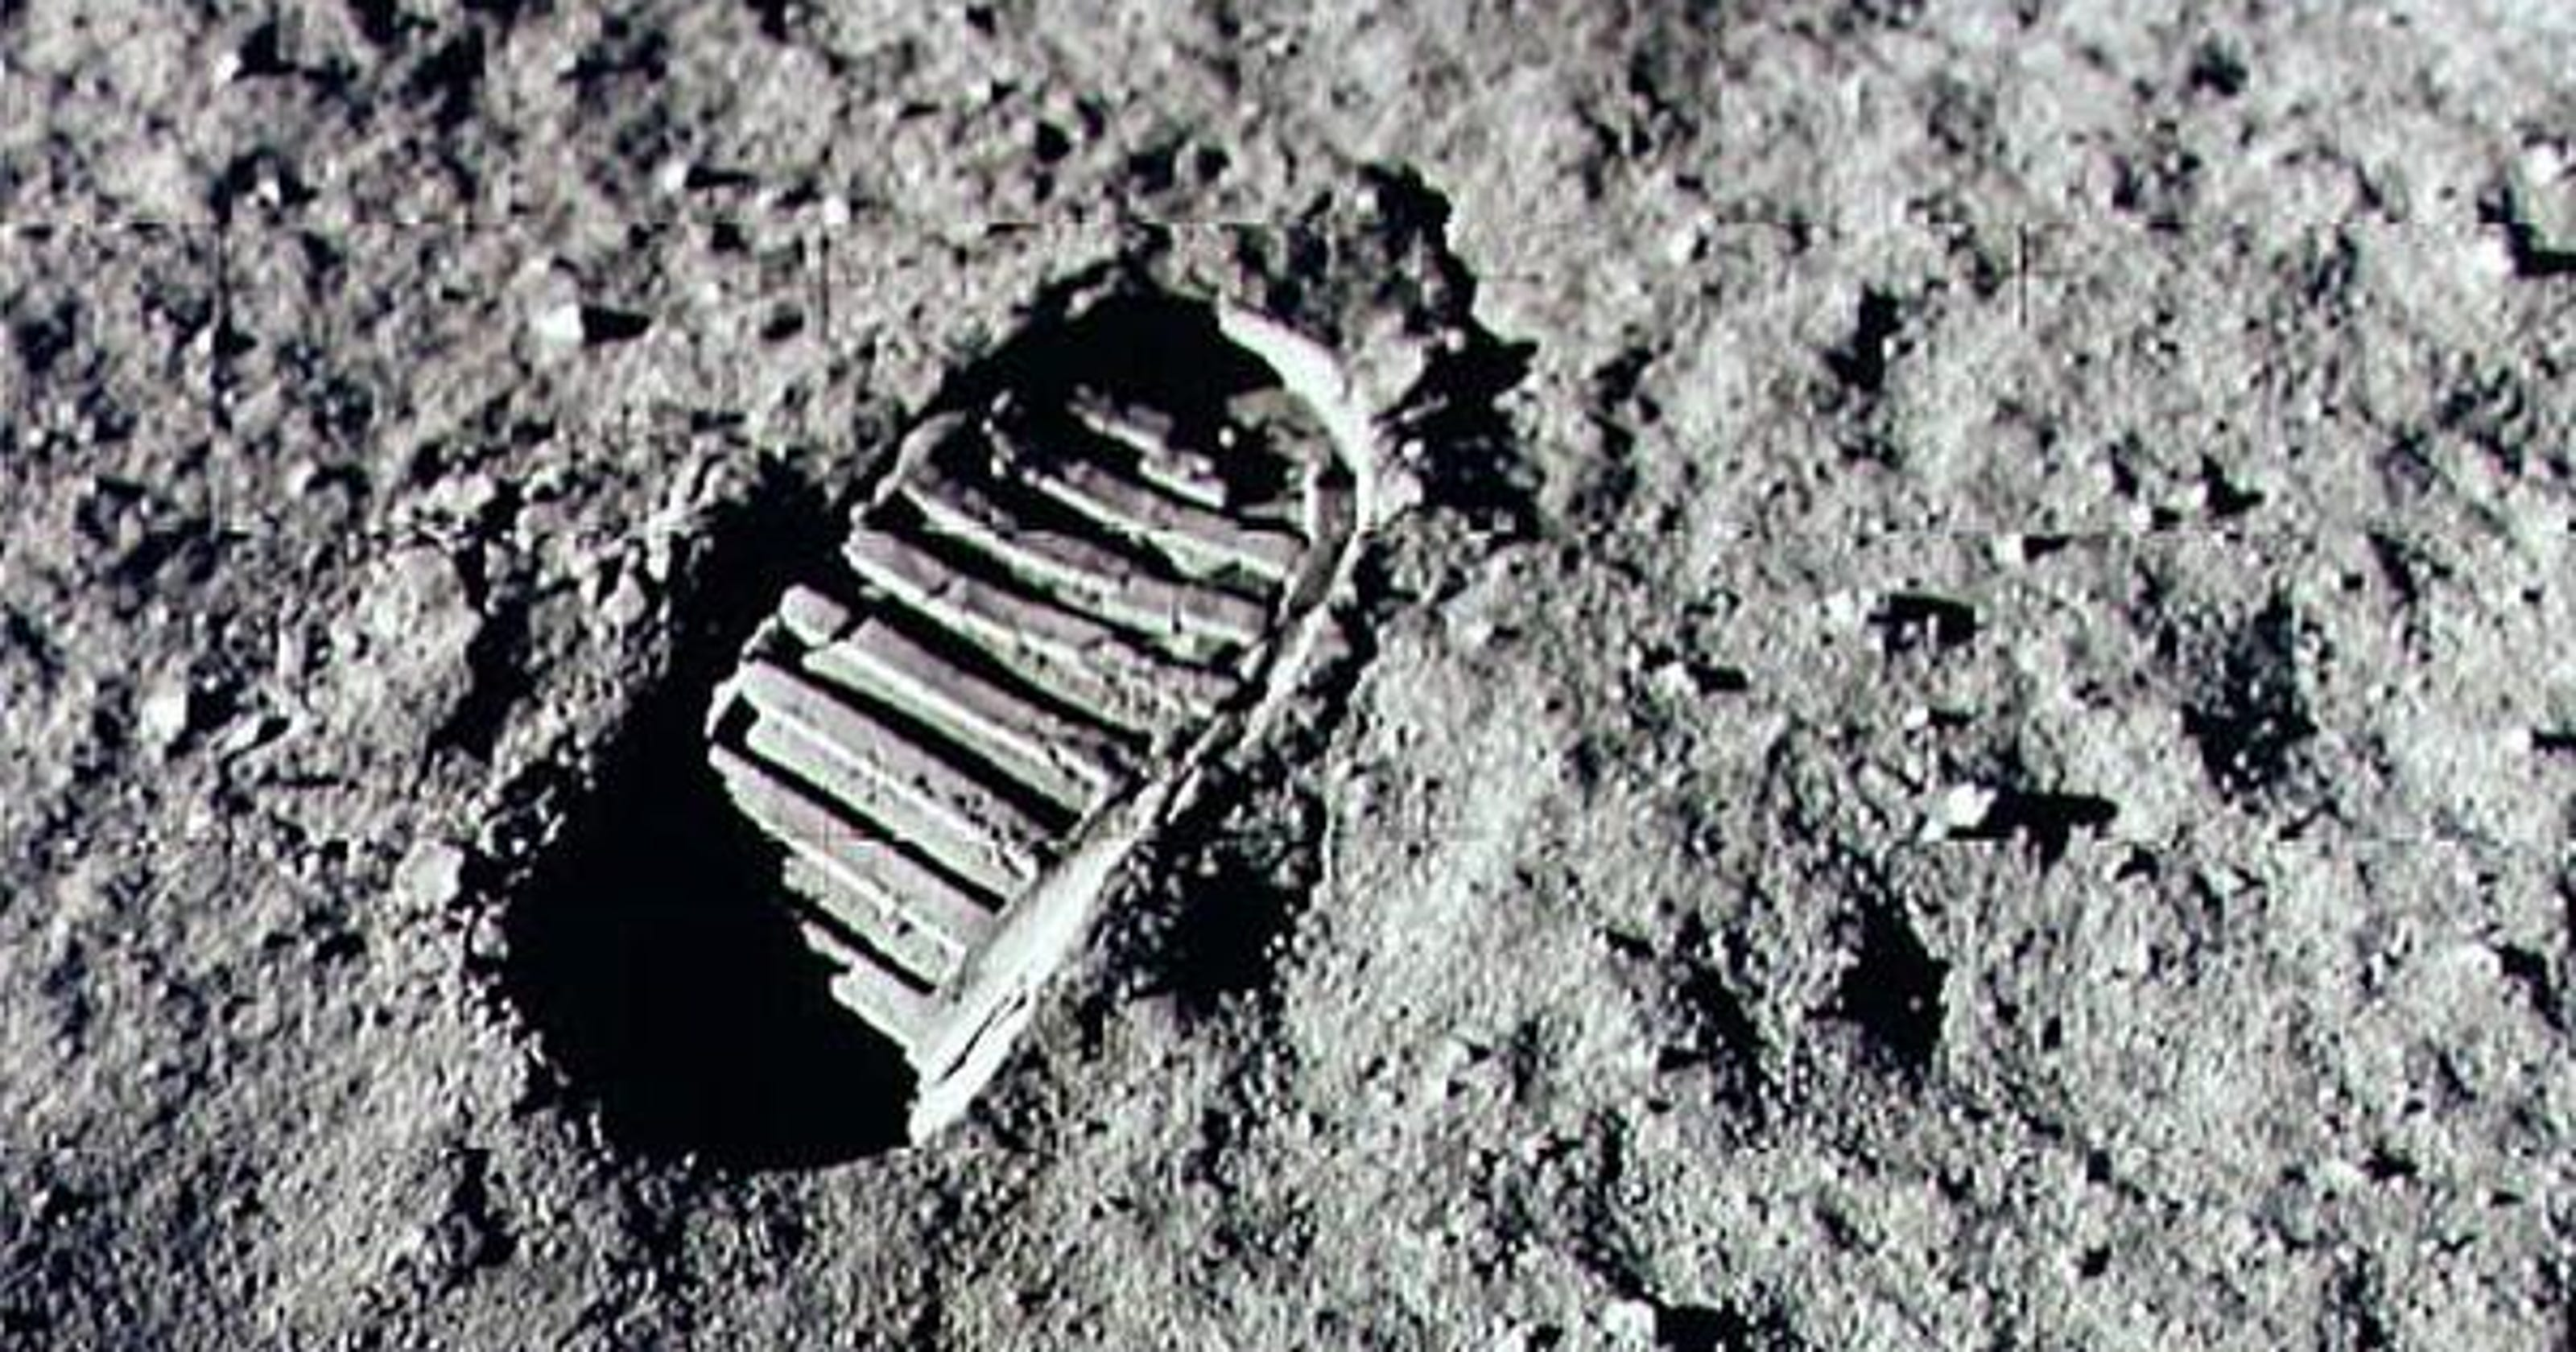 7 things Apollo 11 astronauts left on the moon